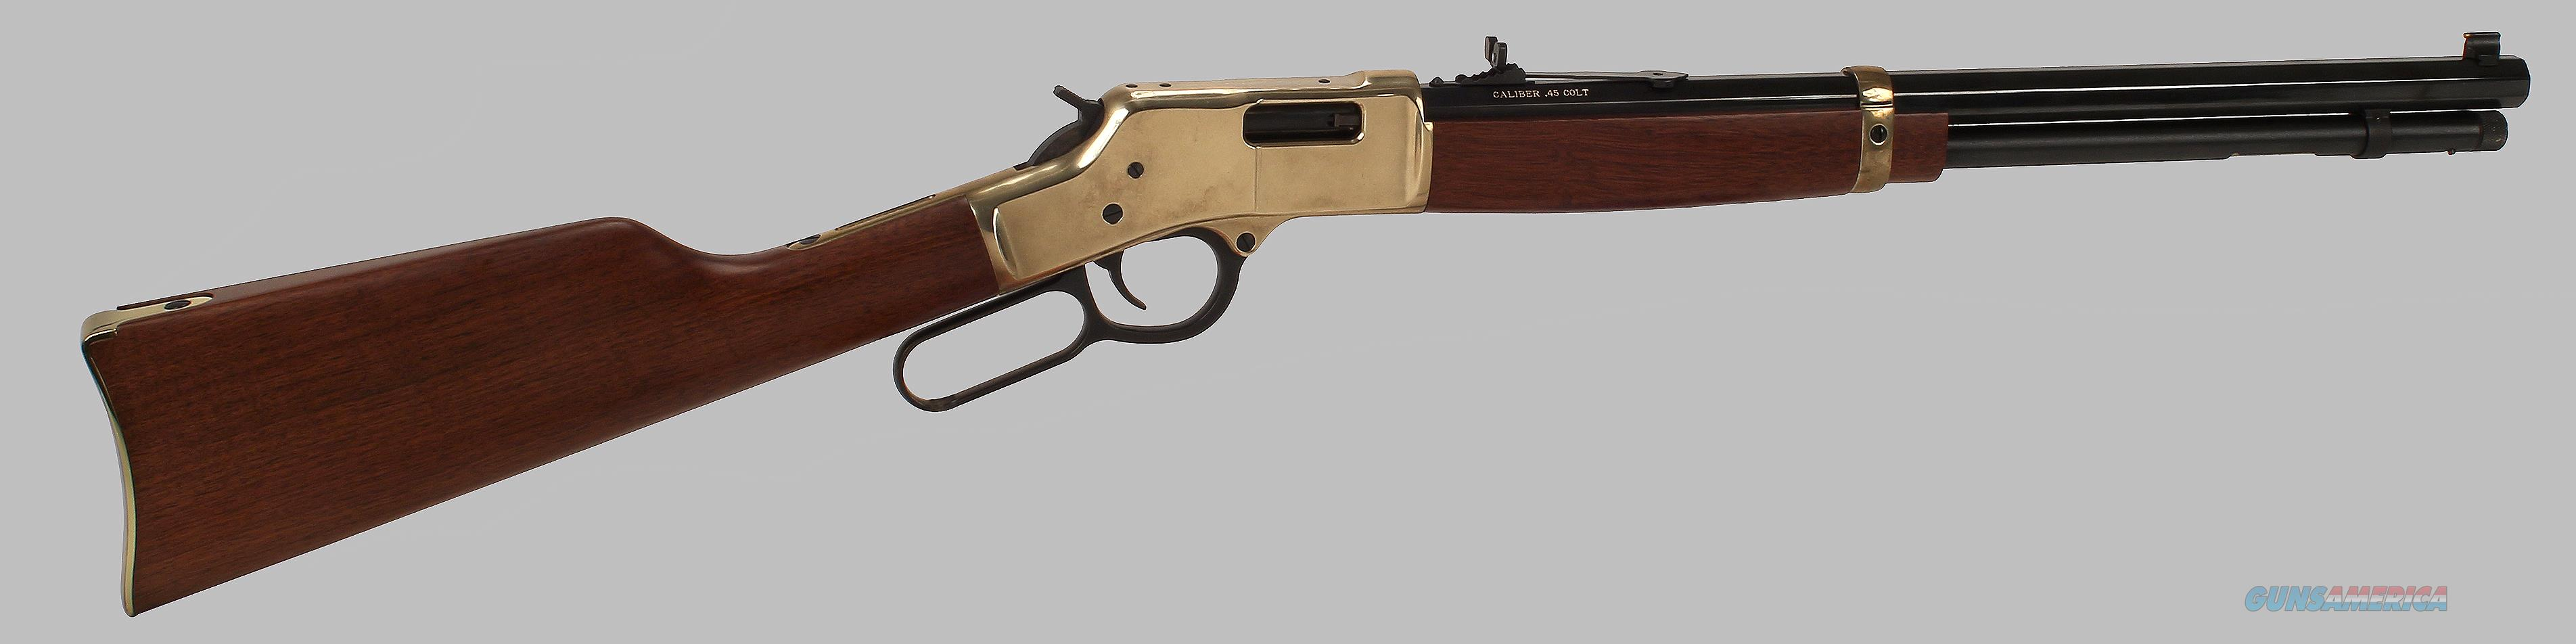 Henry Big Boy 45LC Lever Action Rifle  Guns > Rifles > Henry Rifle Company